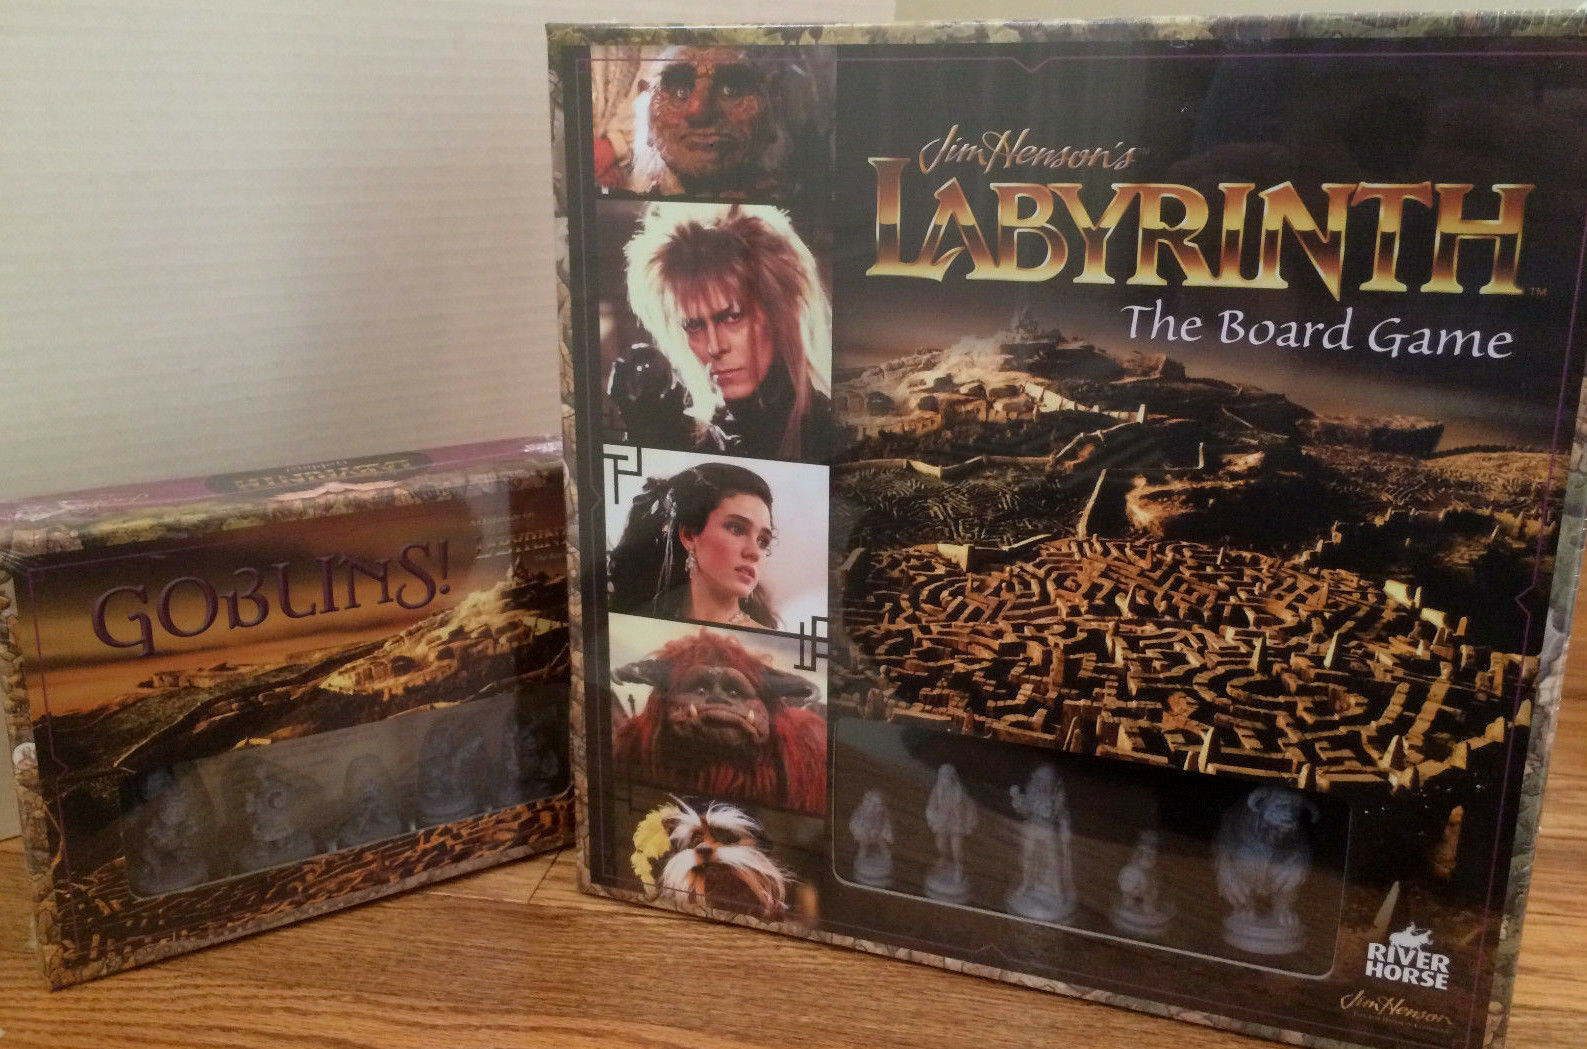 Jim Henson's Labyrinth Board Game + Goblins Expansion  - Nuovo & Sealed